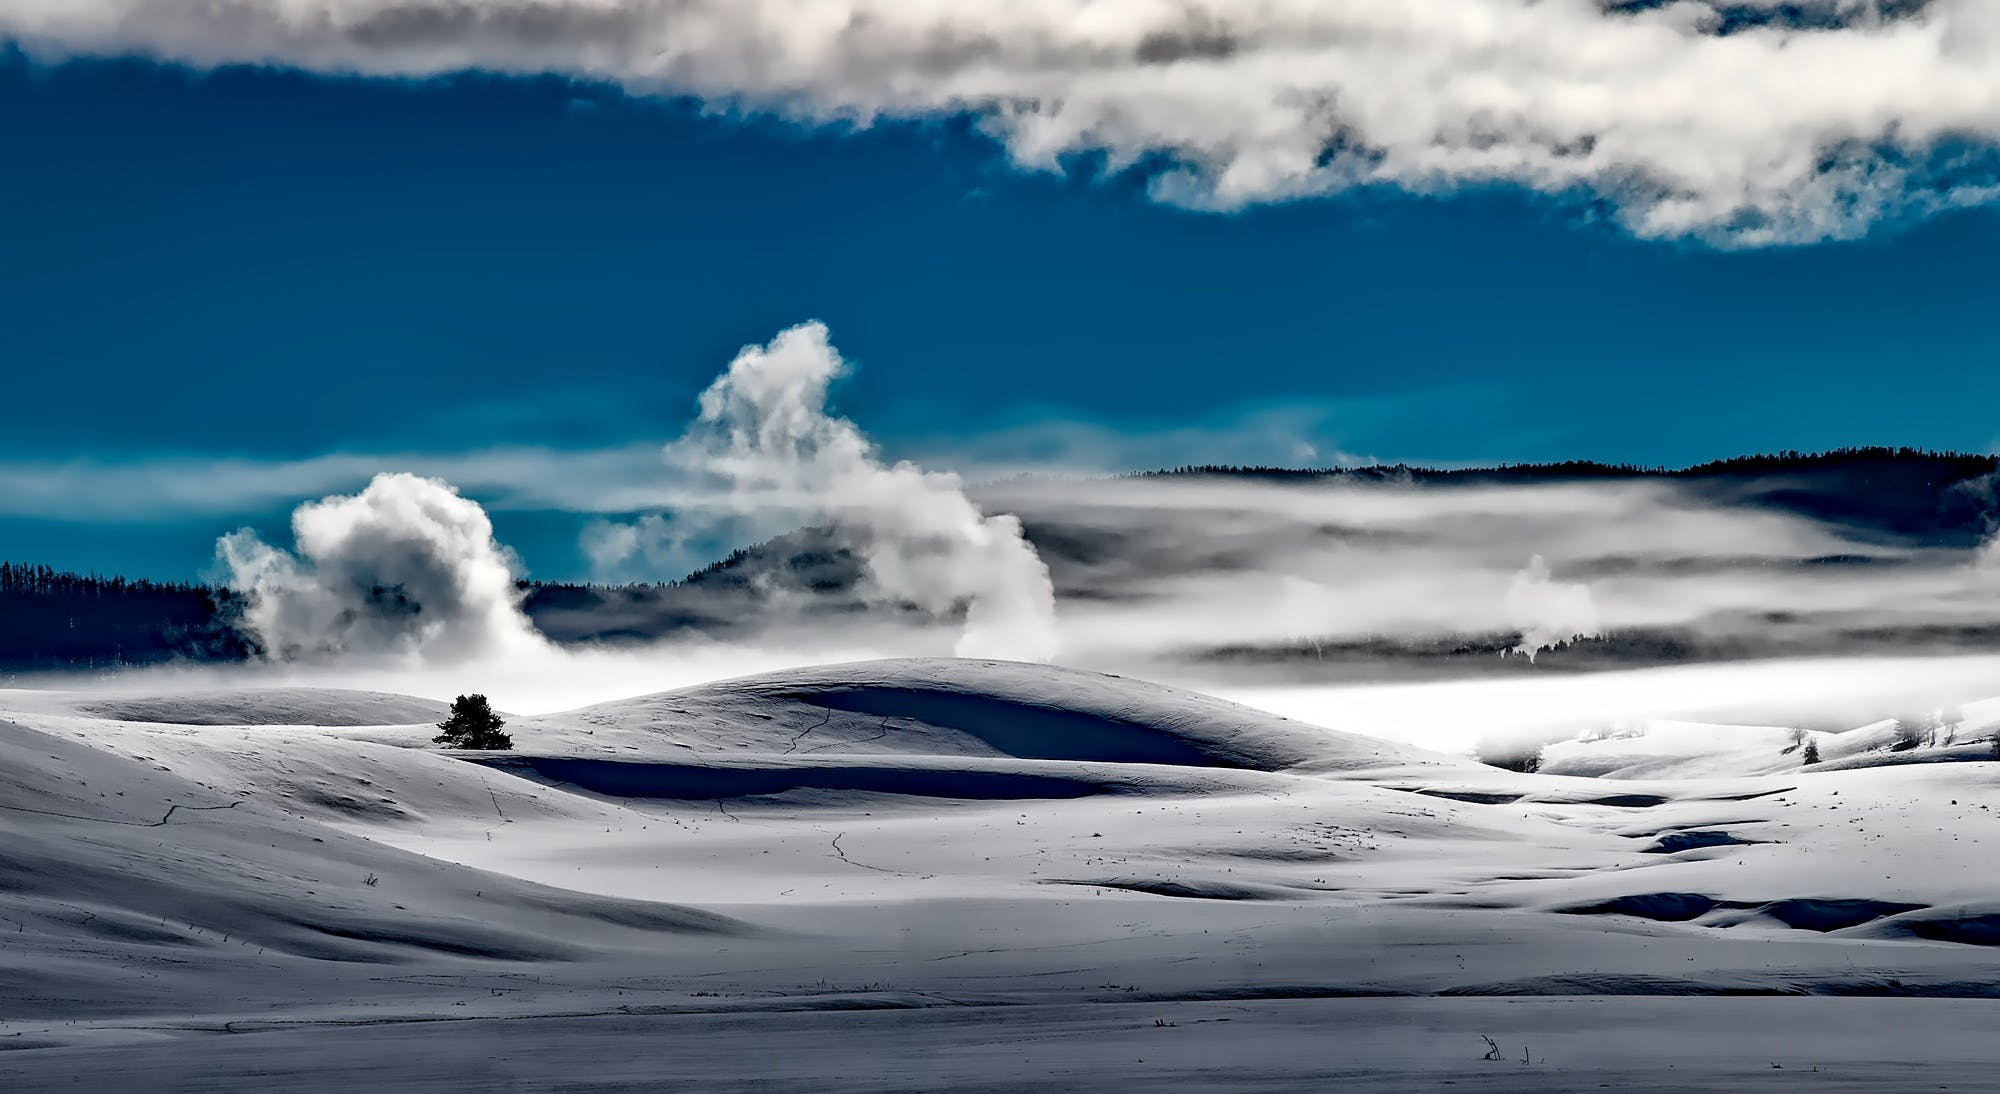 Gray Desert Under White and Blue Cloud Sunny Sky during Daytime